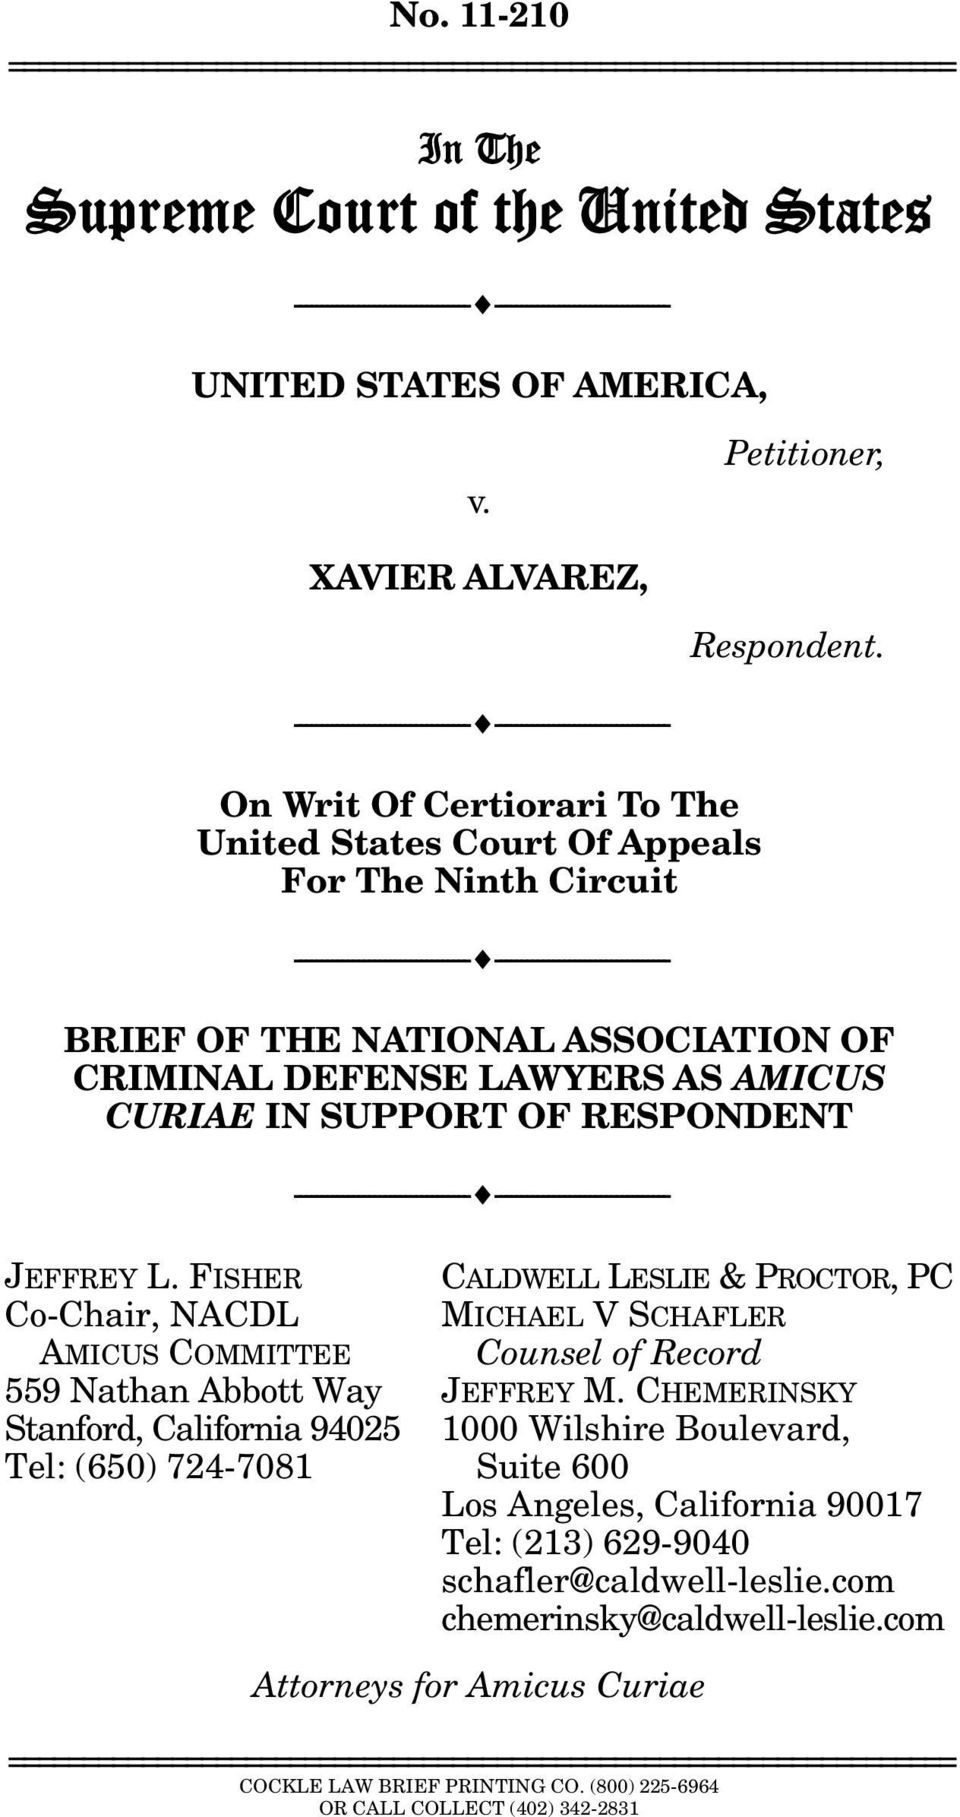 --------------------------------- --------------------------------- On Writ Of Certiorari To The United States Court Of Appeals For The Ninth Circuit ---------------------------------